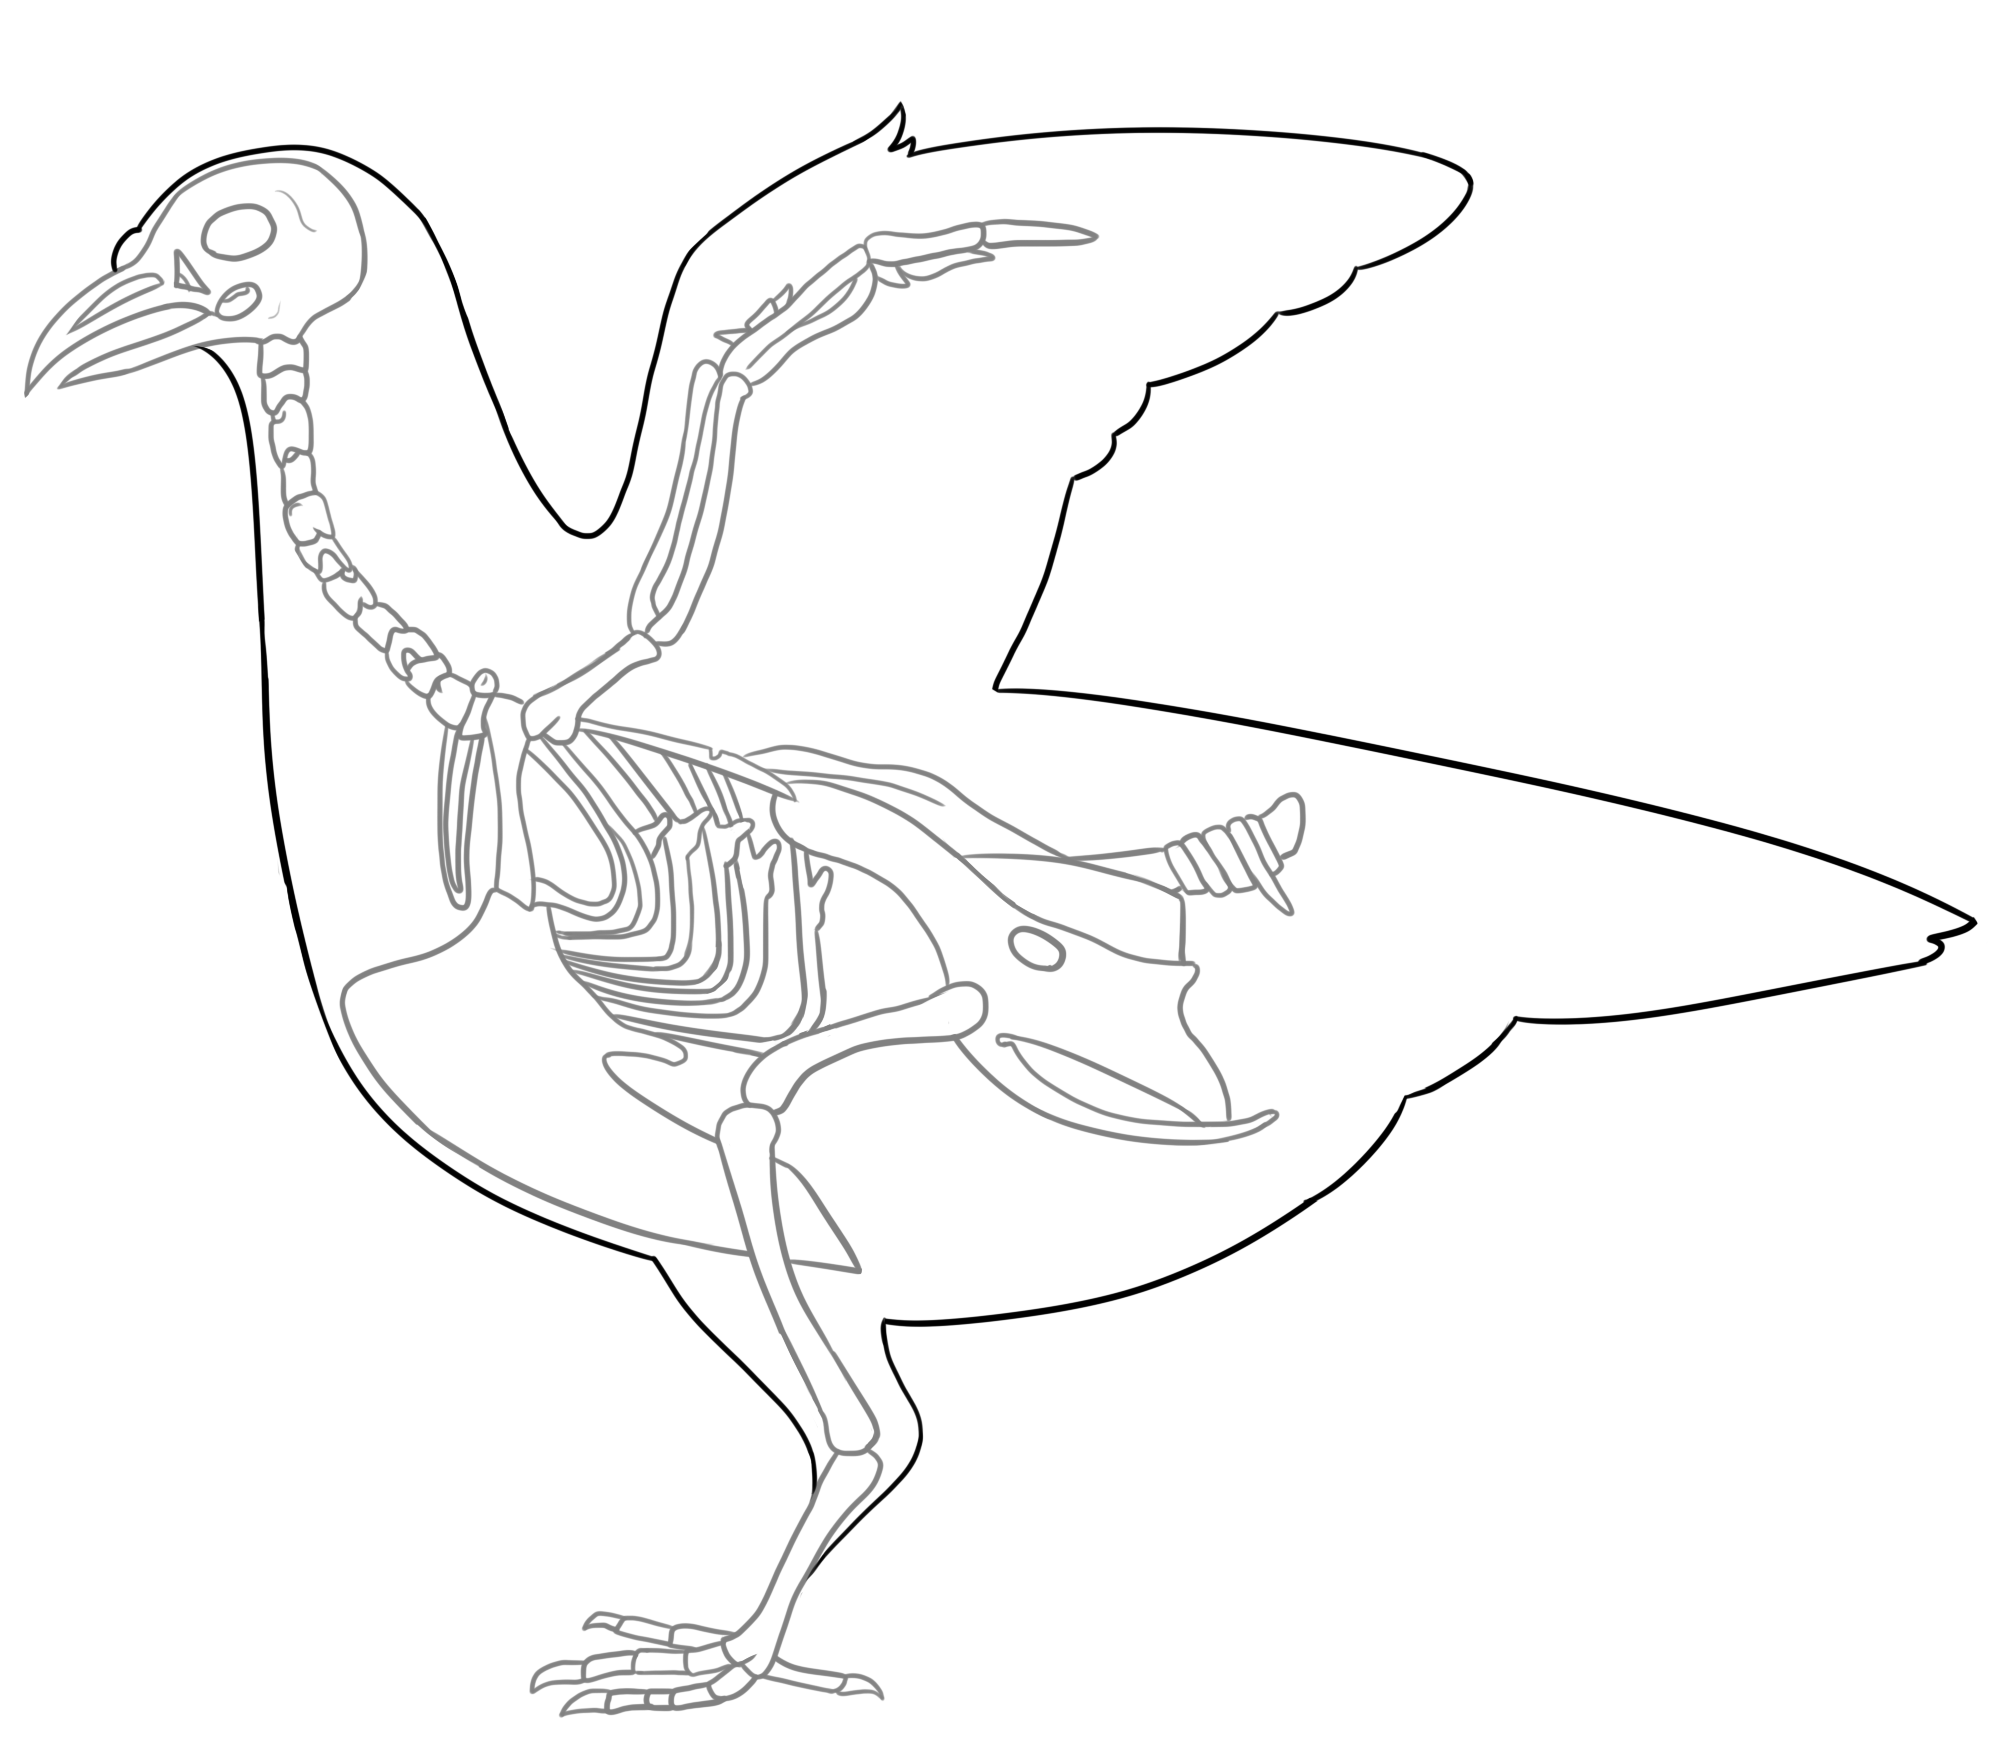 Bird anatomy by RuthlessSoldier on DeviantArt